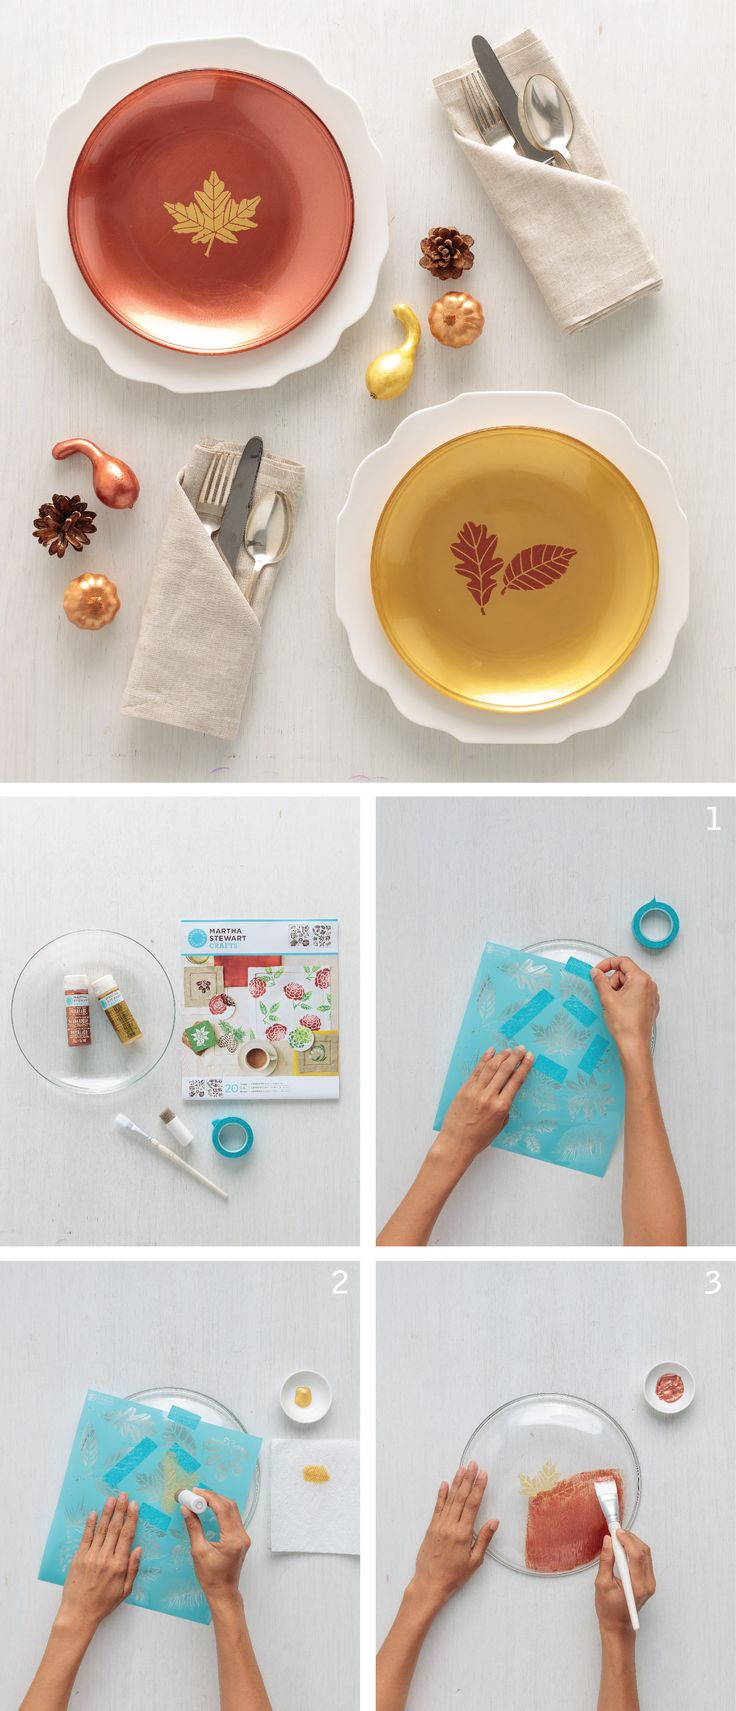 Clear glass plates for crafts - Leaf Stenciled Charger Plates